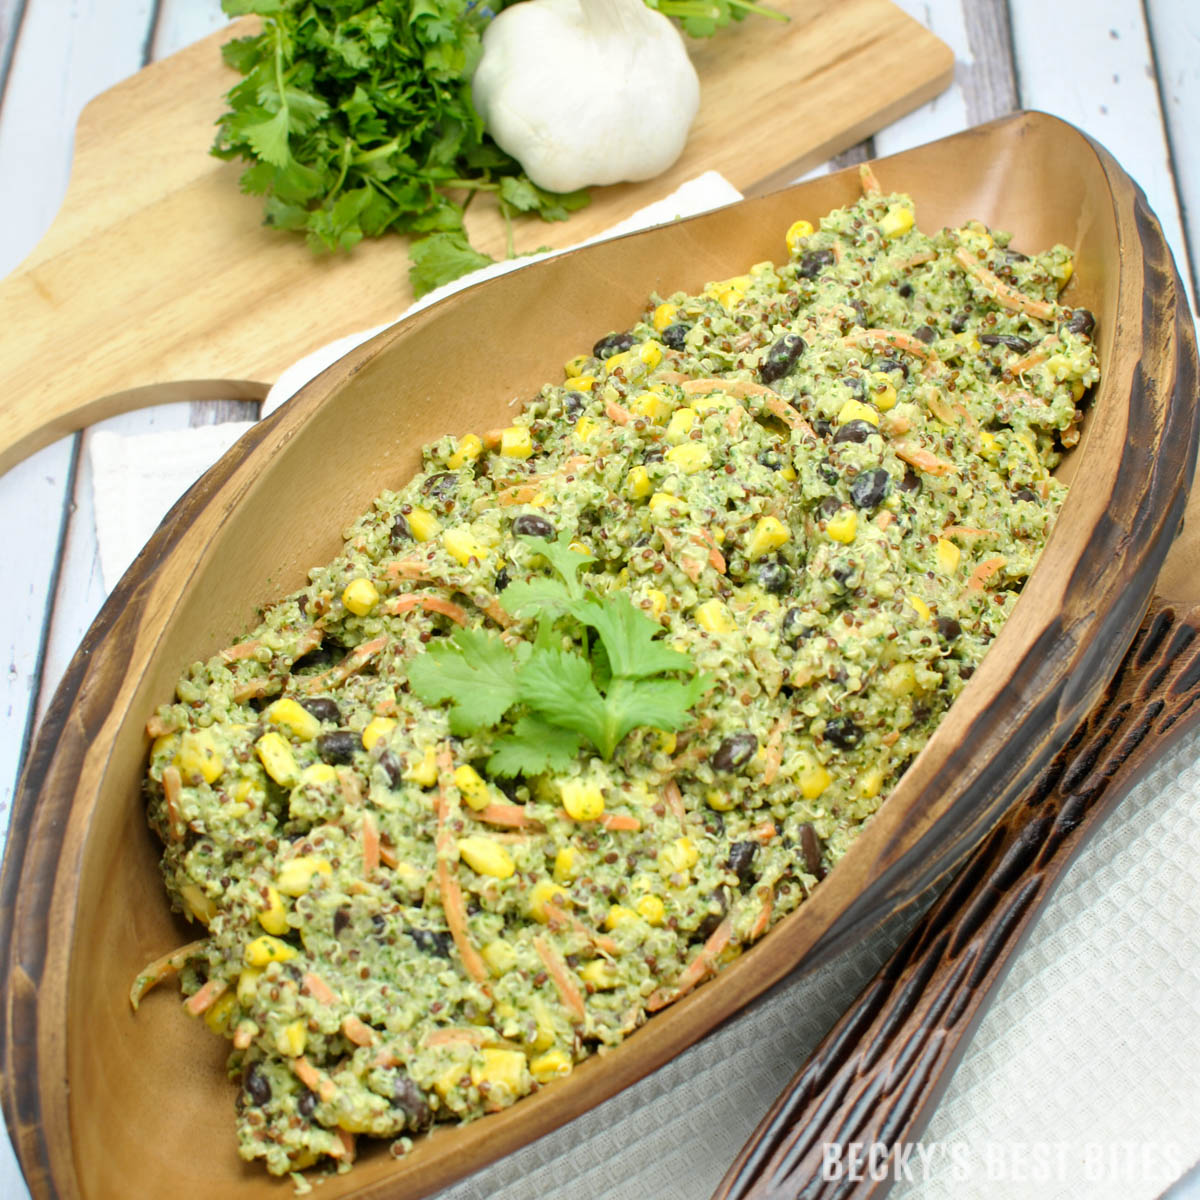 Creamy cilantro quinoa salad beckys best bites creamy cilantro quinoa salad is a healthy salad recipe perfect for any meal add just forumfinder Images